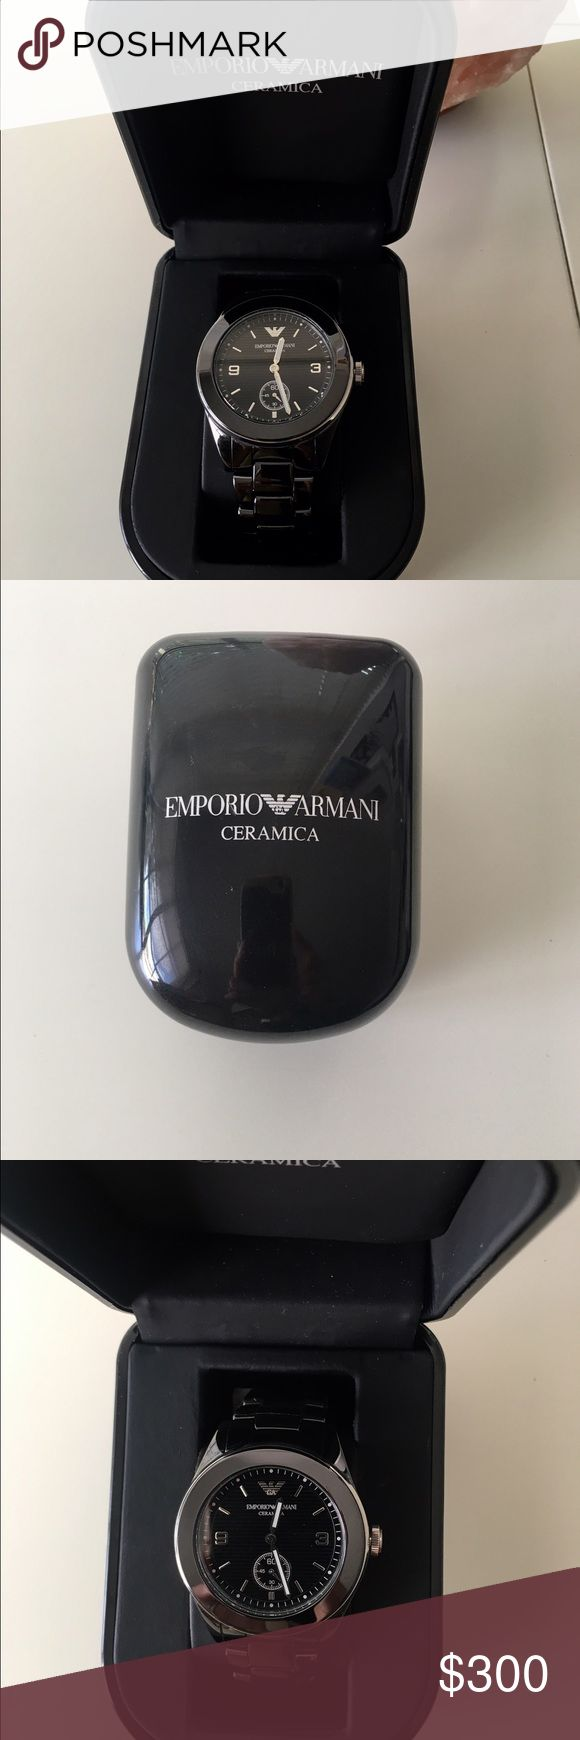 NWT! Emporio Armani Ceramica Black Watch! 🚨PRICE DROP!🚨EMPORIO ARMANI: Black ceramic chronograph watch.  Ceramica Collection Analog Quartz Movement 30 Meters / 100 Feet / 3 ATM Water Resistant 35mm Case Diameter Mineral Crystal Emporio Armani Accessories Watches